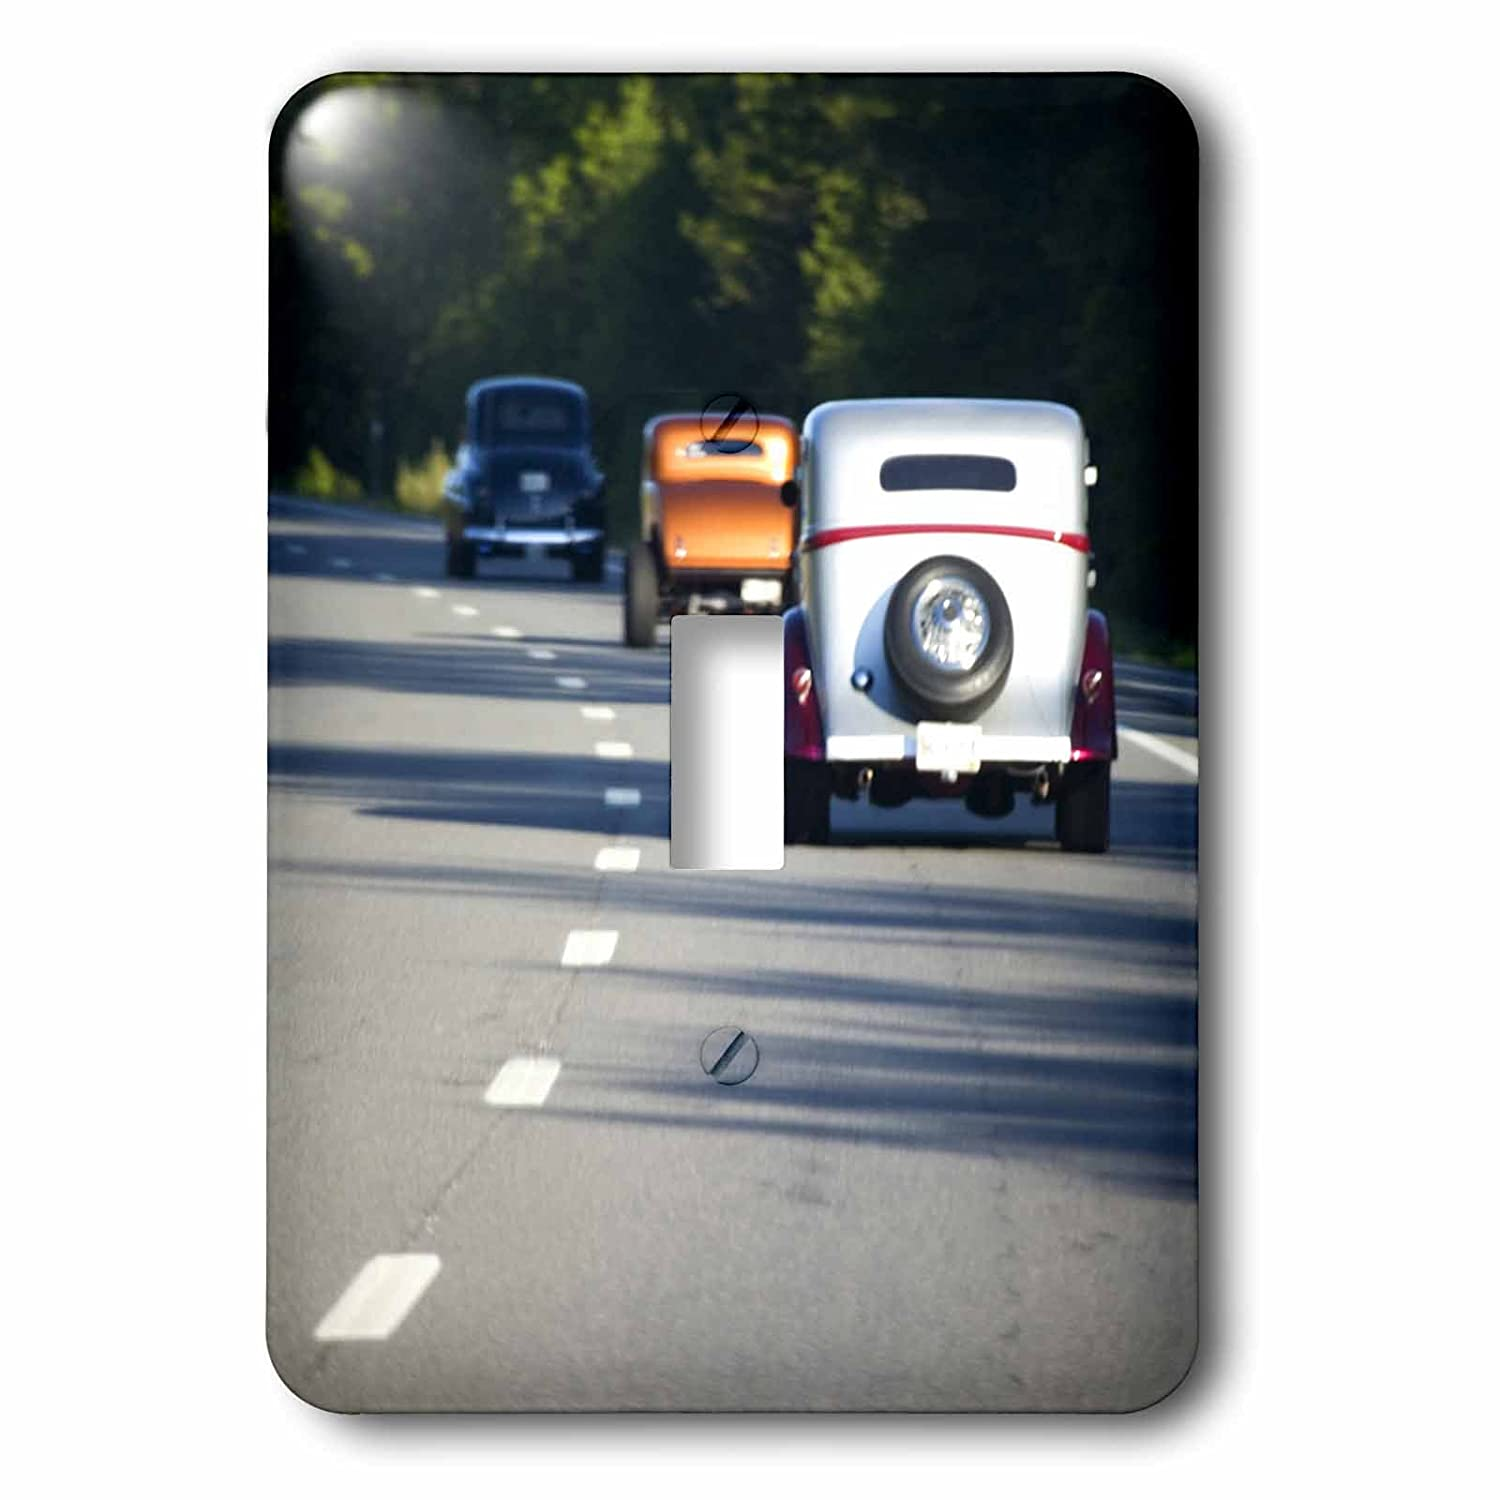 Jaynes Gallery Single Toggle Switch 3D Rose Us20 Bja0034 Classic Cars Traveling on Highway Home Improvement 3dRose lsp/_90559/_1 Maine